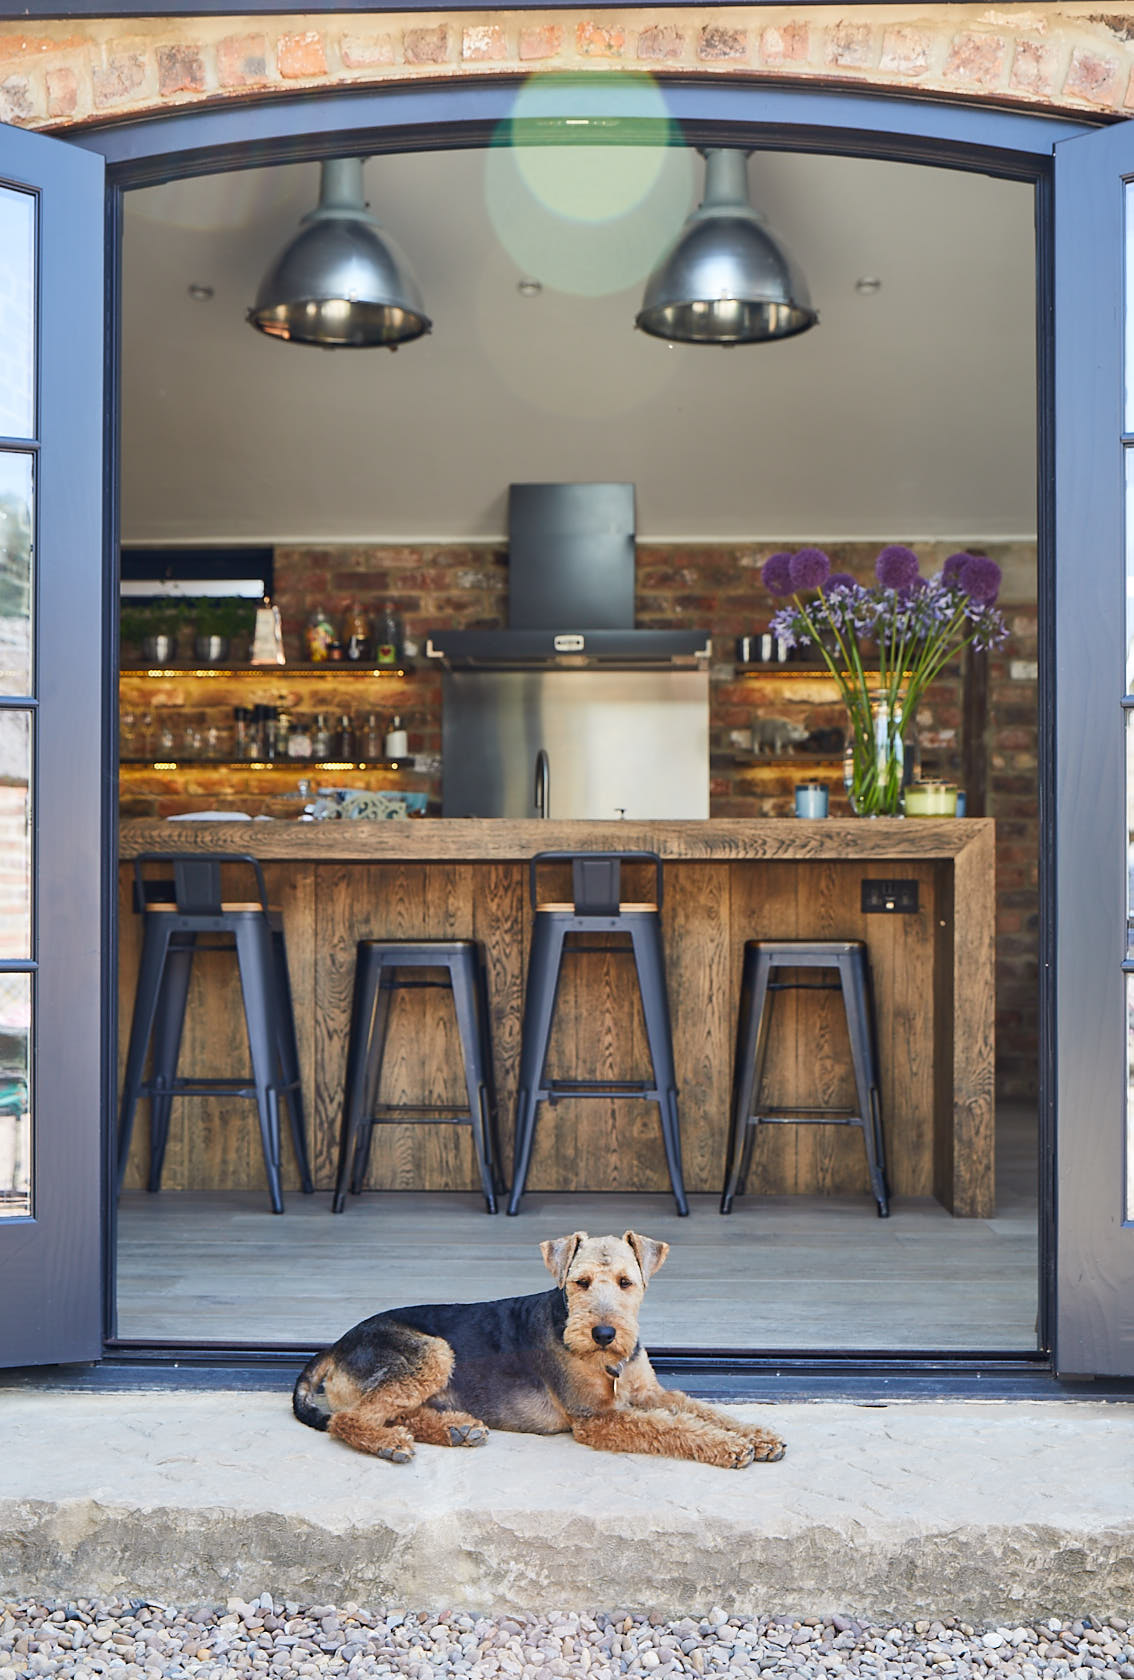 Dog sat outside in front of bespoke industrial kitchen